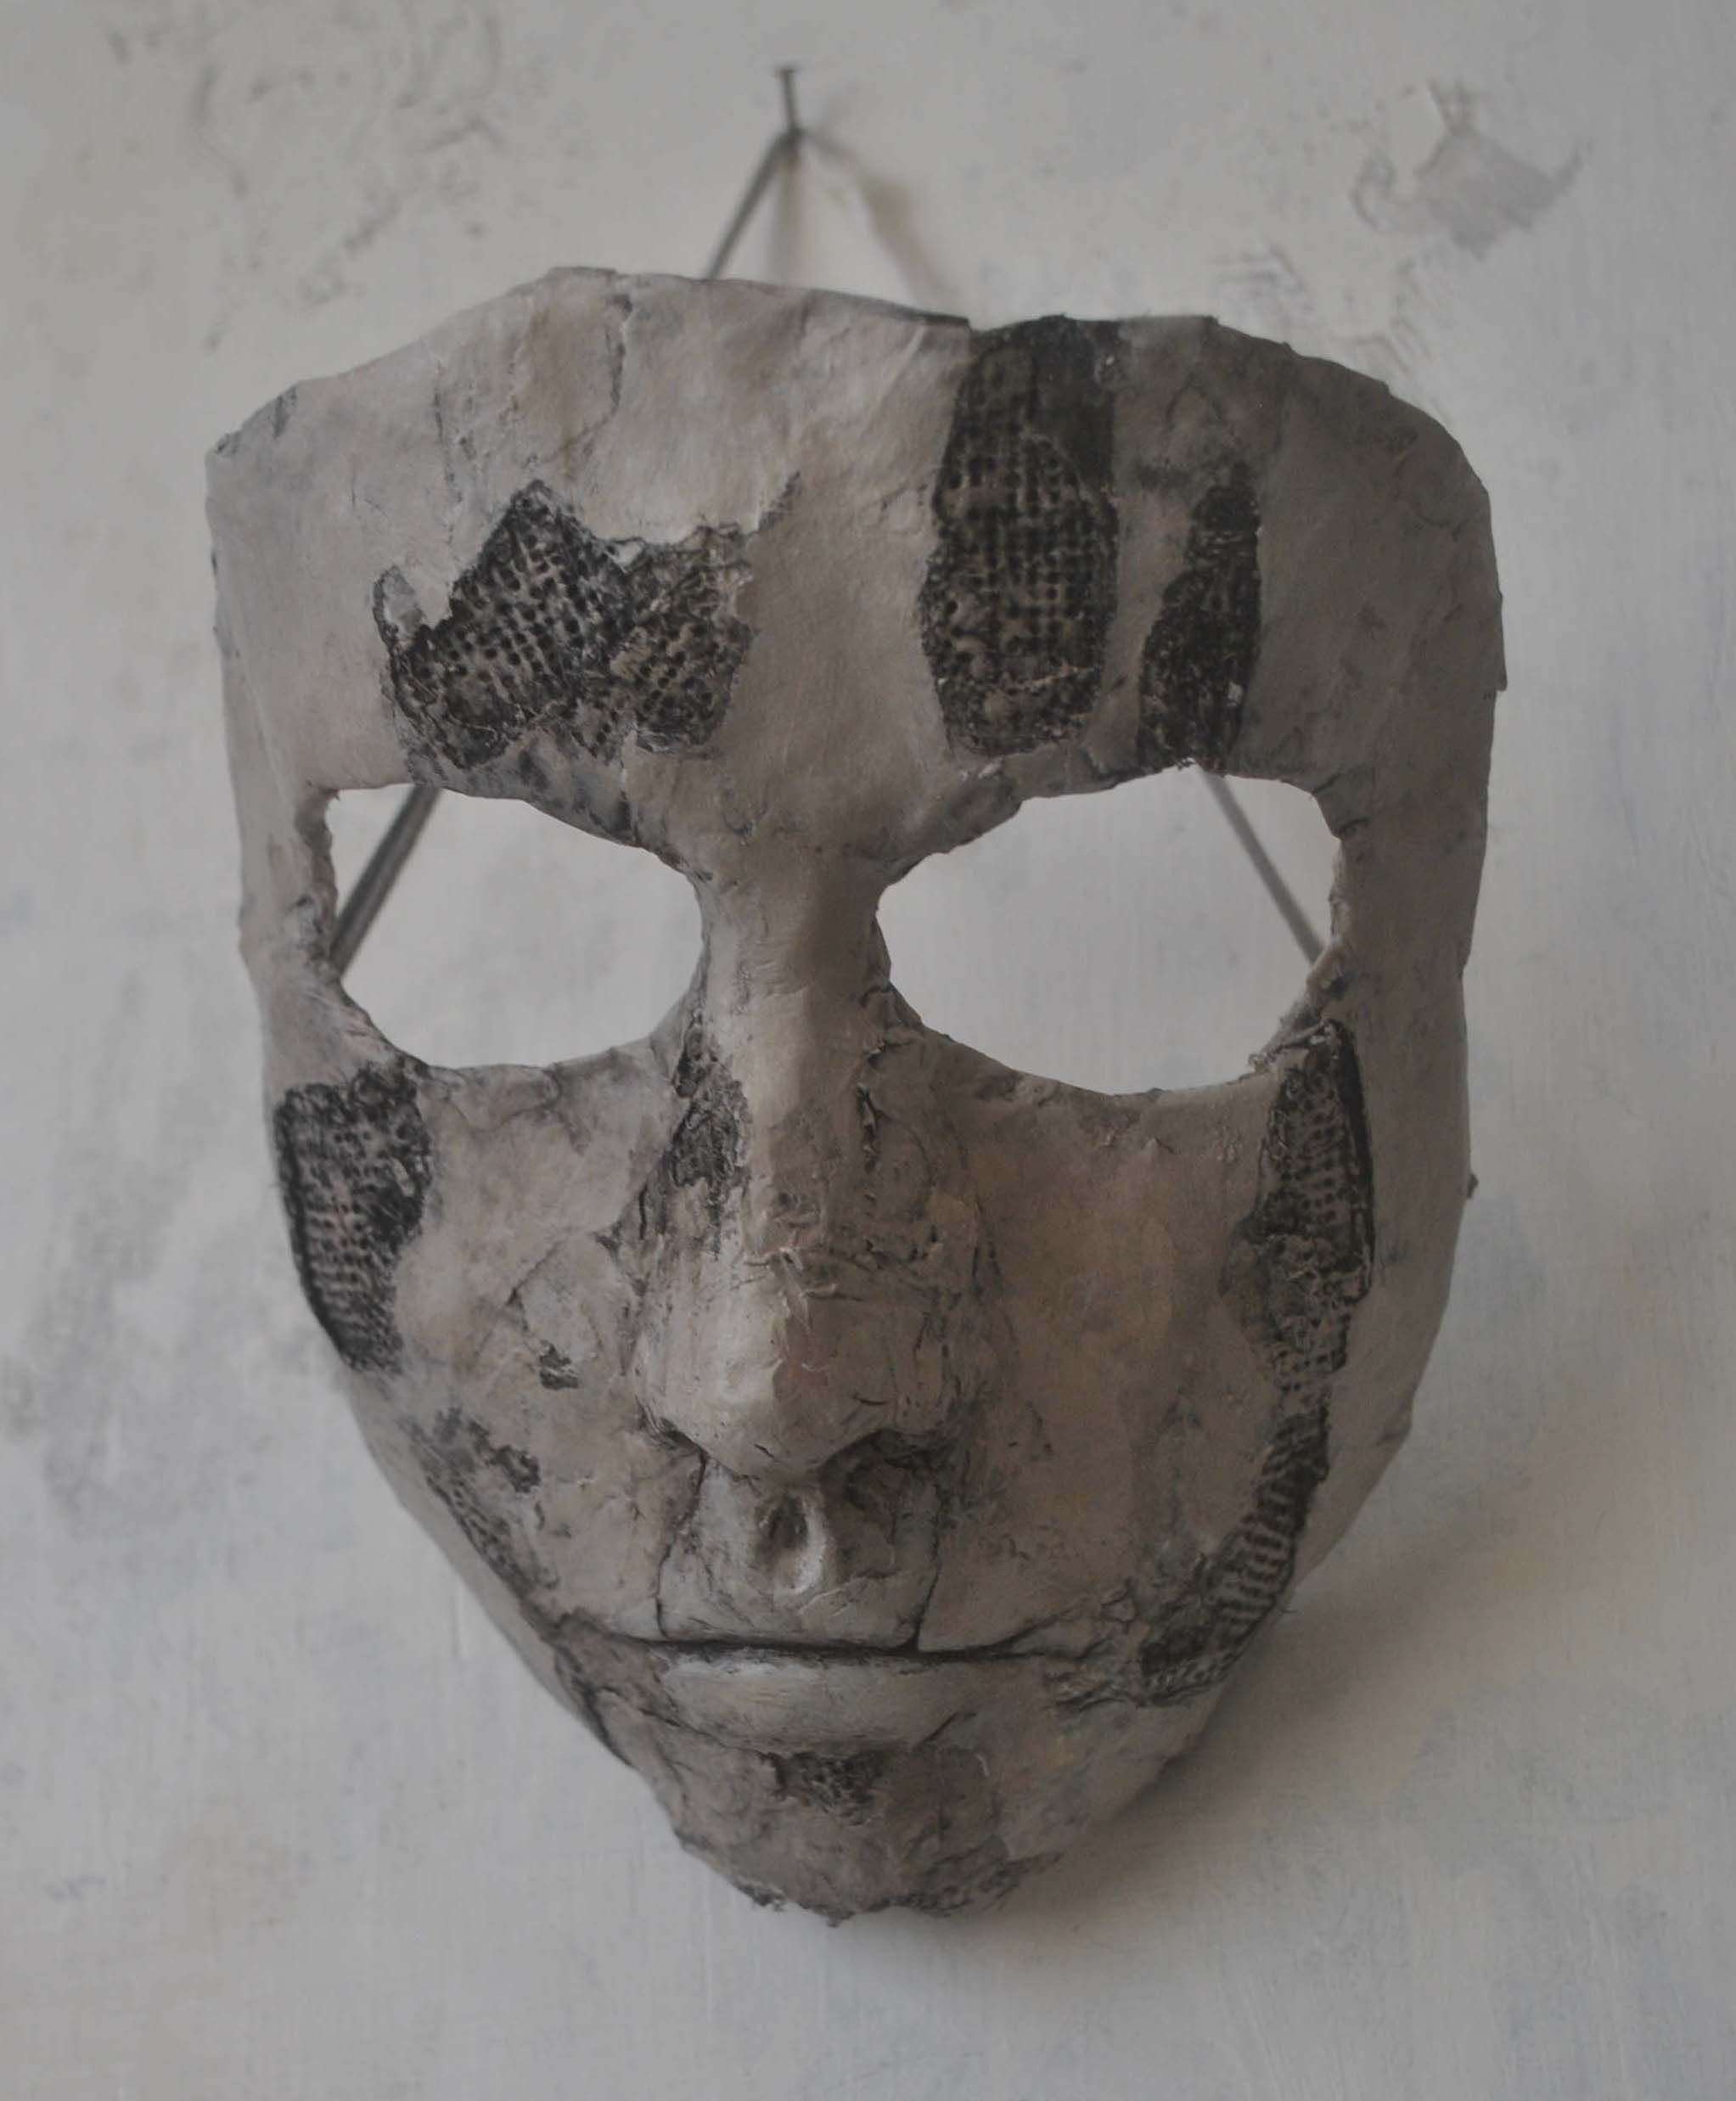 A Homemade Mask Inspired By Black Mold Spores Under Ling Wallpaper